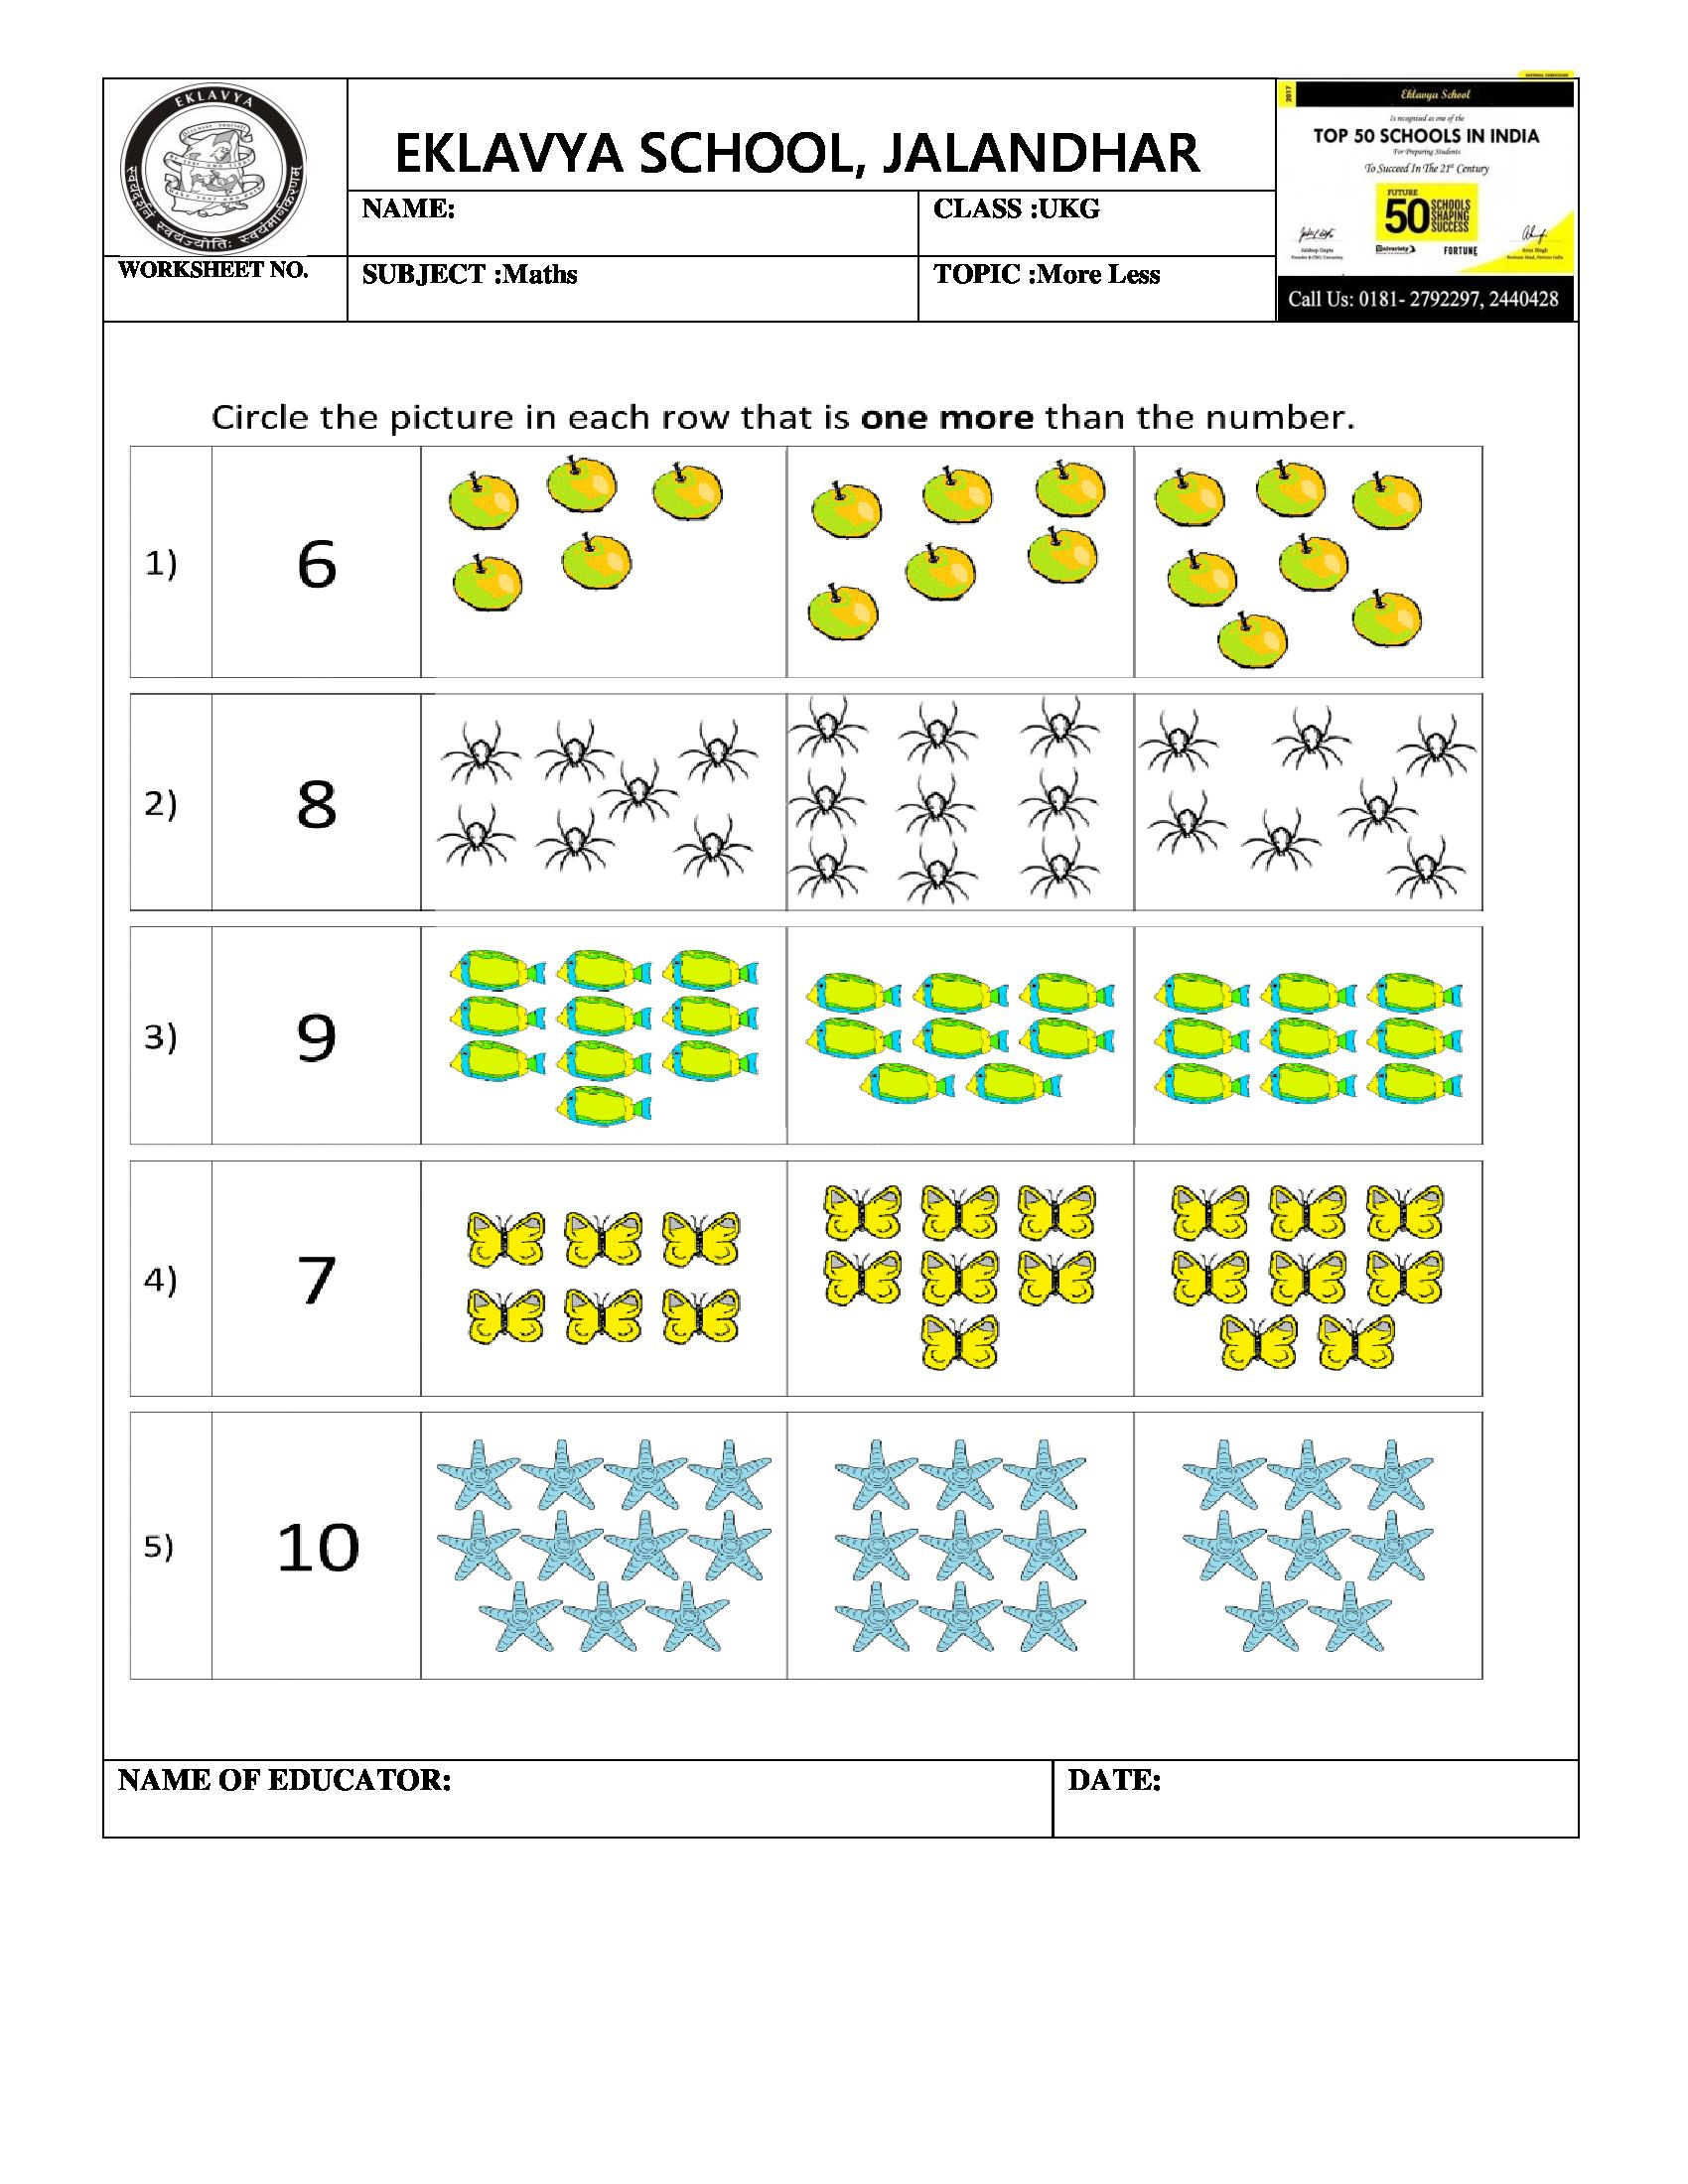 Worksheet On More Less More And Less Worksheets Math [ 2200 x 1700 Pixel ]